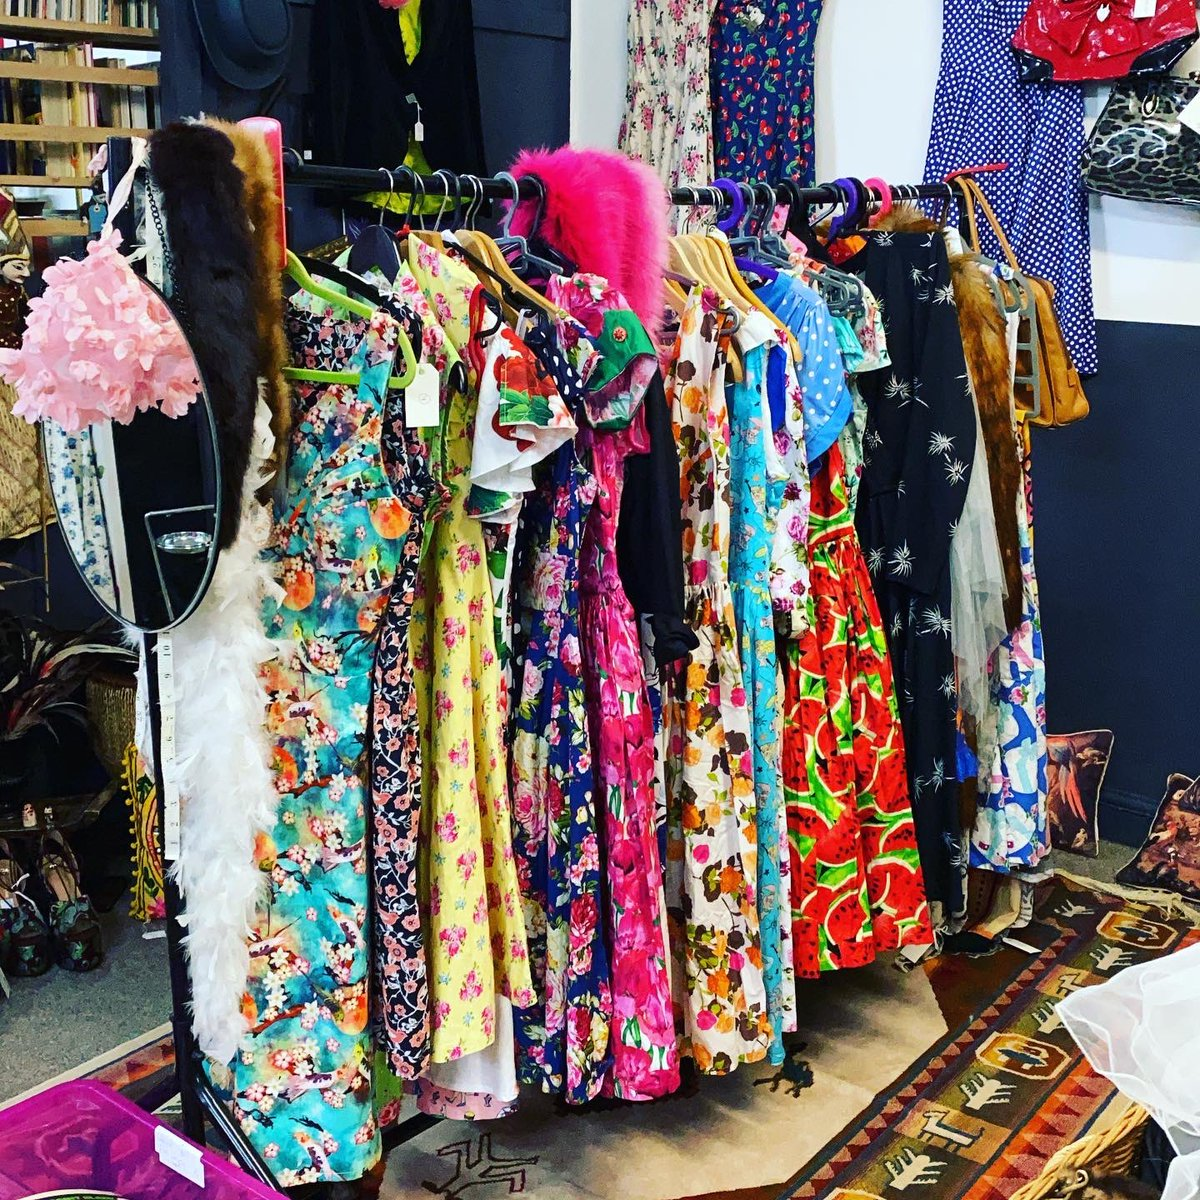 We have a new dealer here at Astra and they have pretty vintage inspired frocks amongst other fantastic items. #vintageinspired #vintagefrocks #prettydresses #shoes #bags #astraantiquescentre #hemswell #lincolnshire https://t.co/be4jY97Xu9